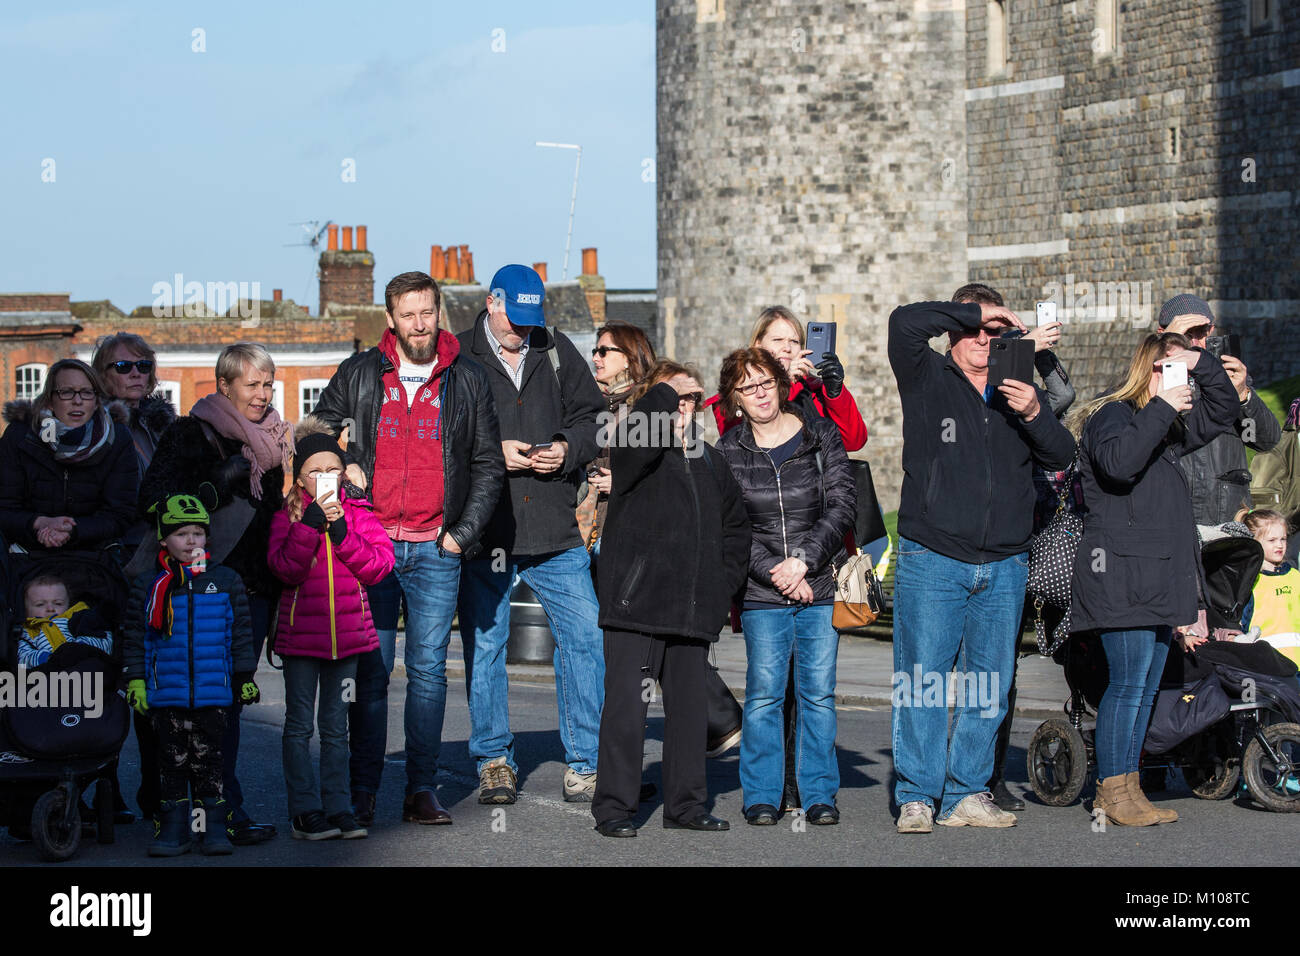 Windsor, UK. 25th January, 2018. Tourists shield their eyes from the sun as they watch the Changing of the Guard Stock Photo